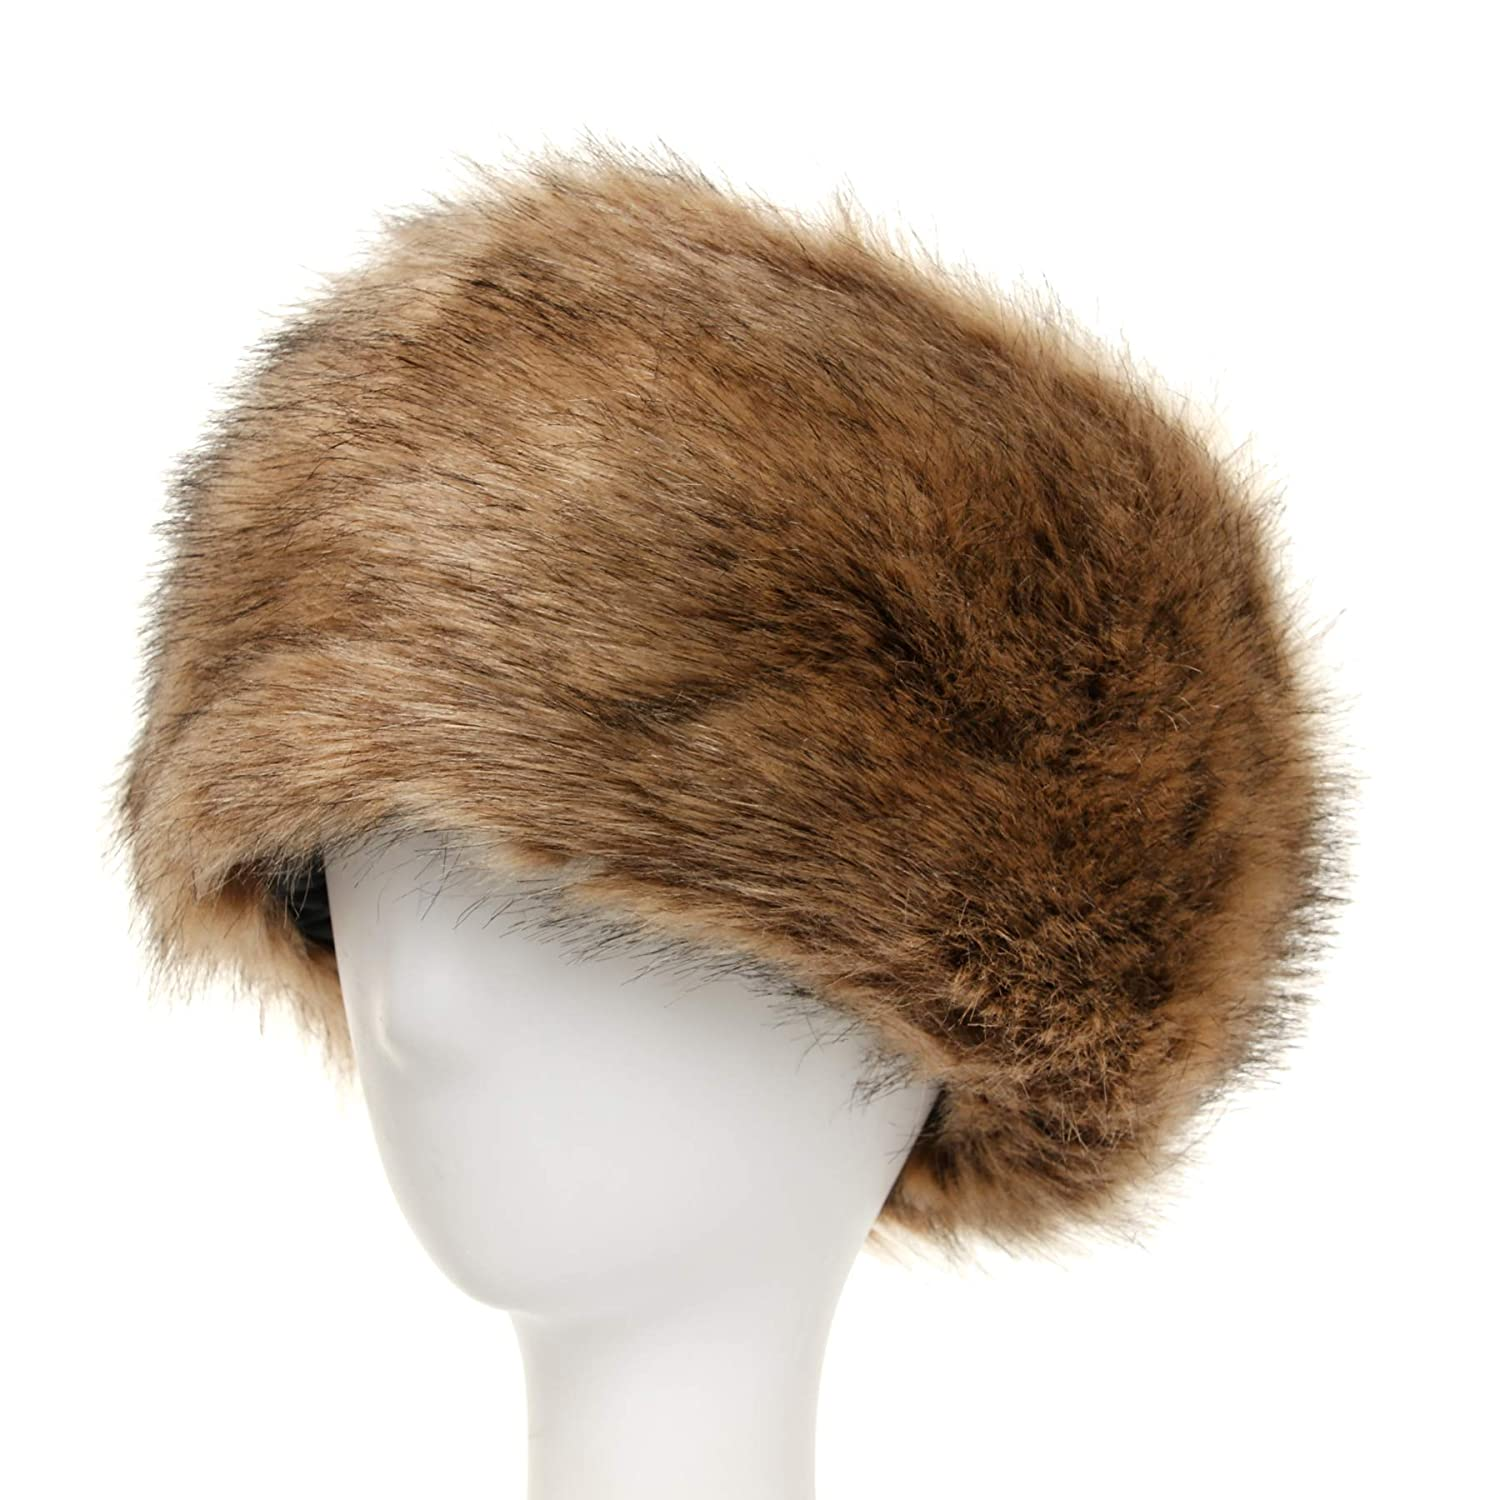 La Carrie Women's Faux Fur Hat for Winter with Stretch Cossack Russion Style White Warm Cap LCFH001-P-4